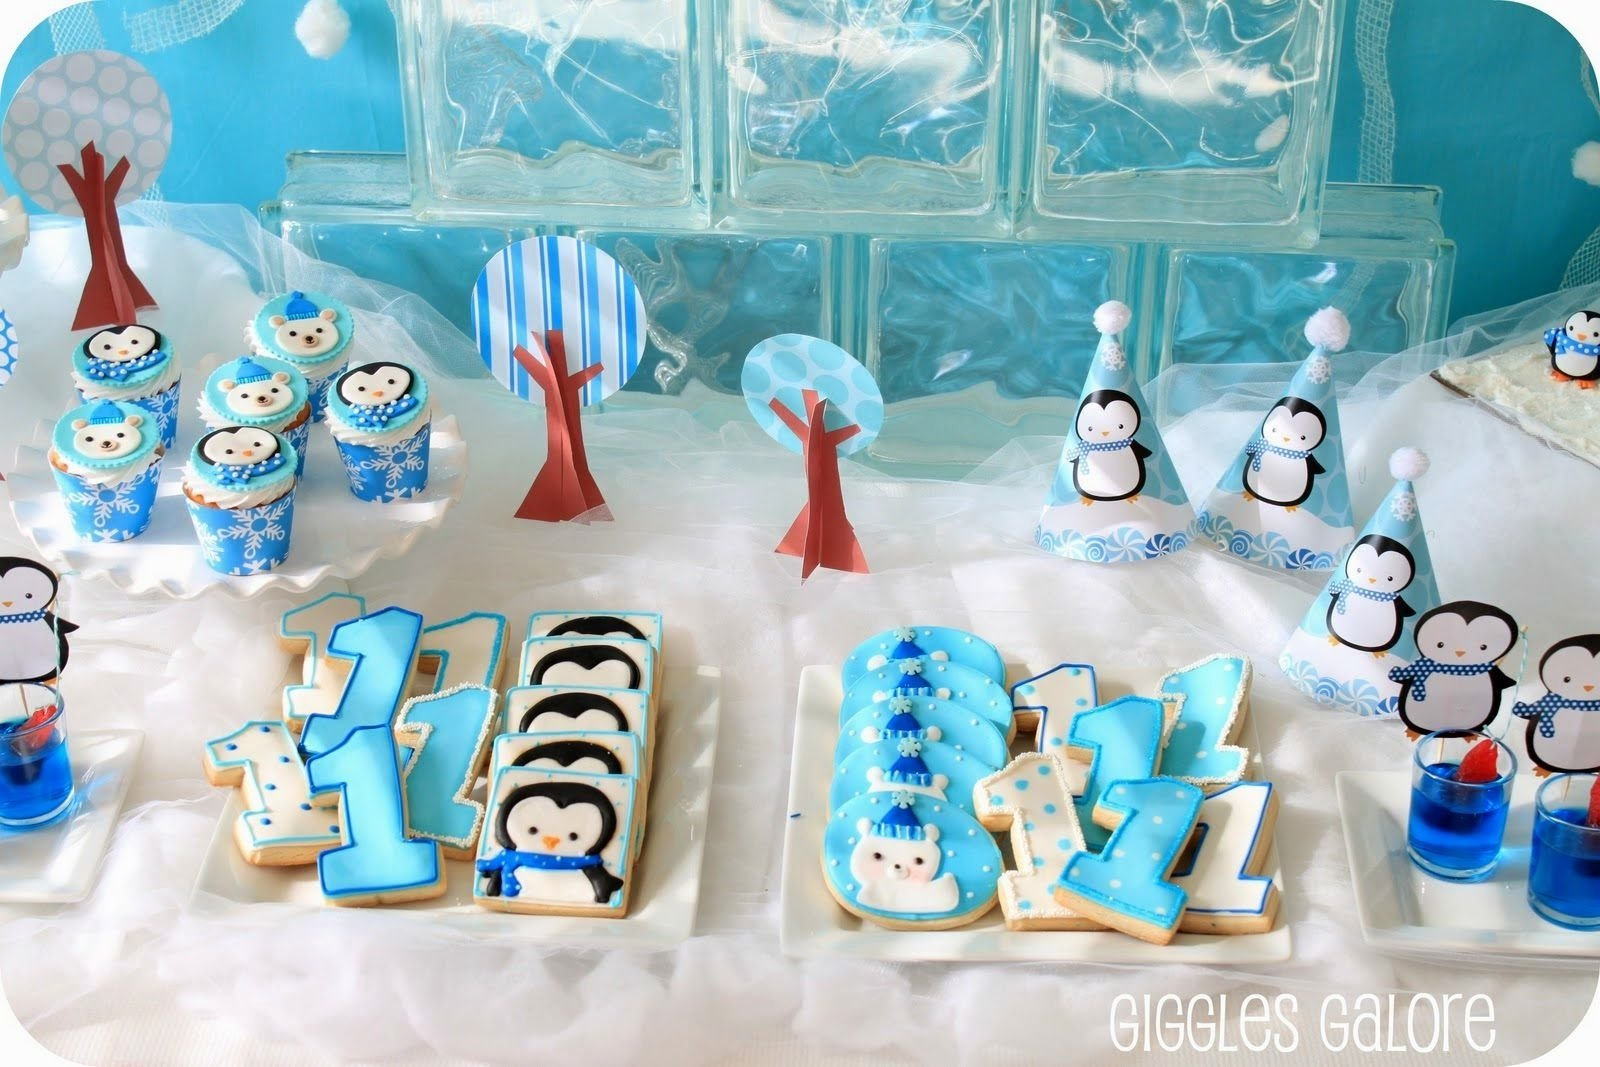 10 Great 1 Year Old Birthday Party Ideas considerable ideasfor a two year birthday party ideas as wells as 1 2020